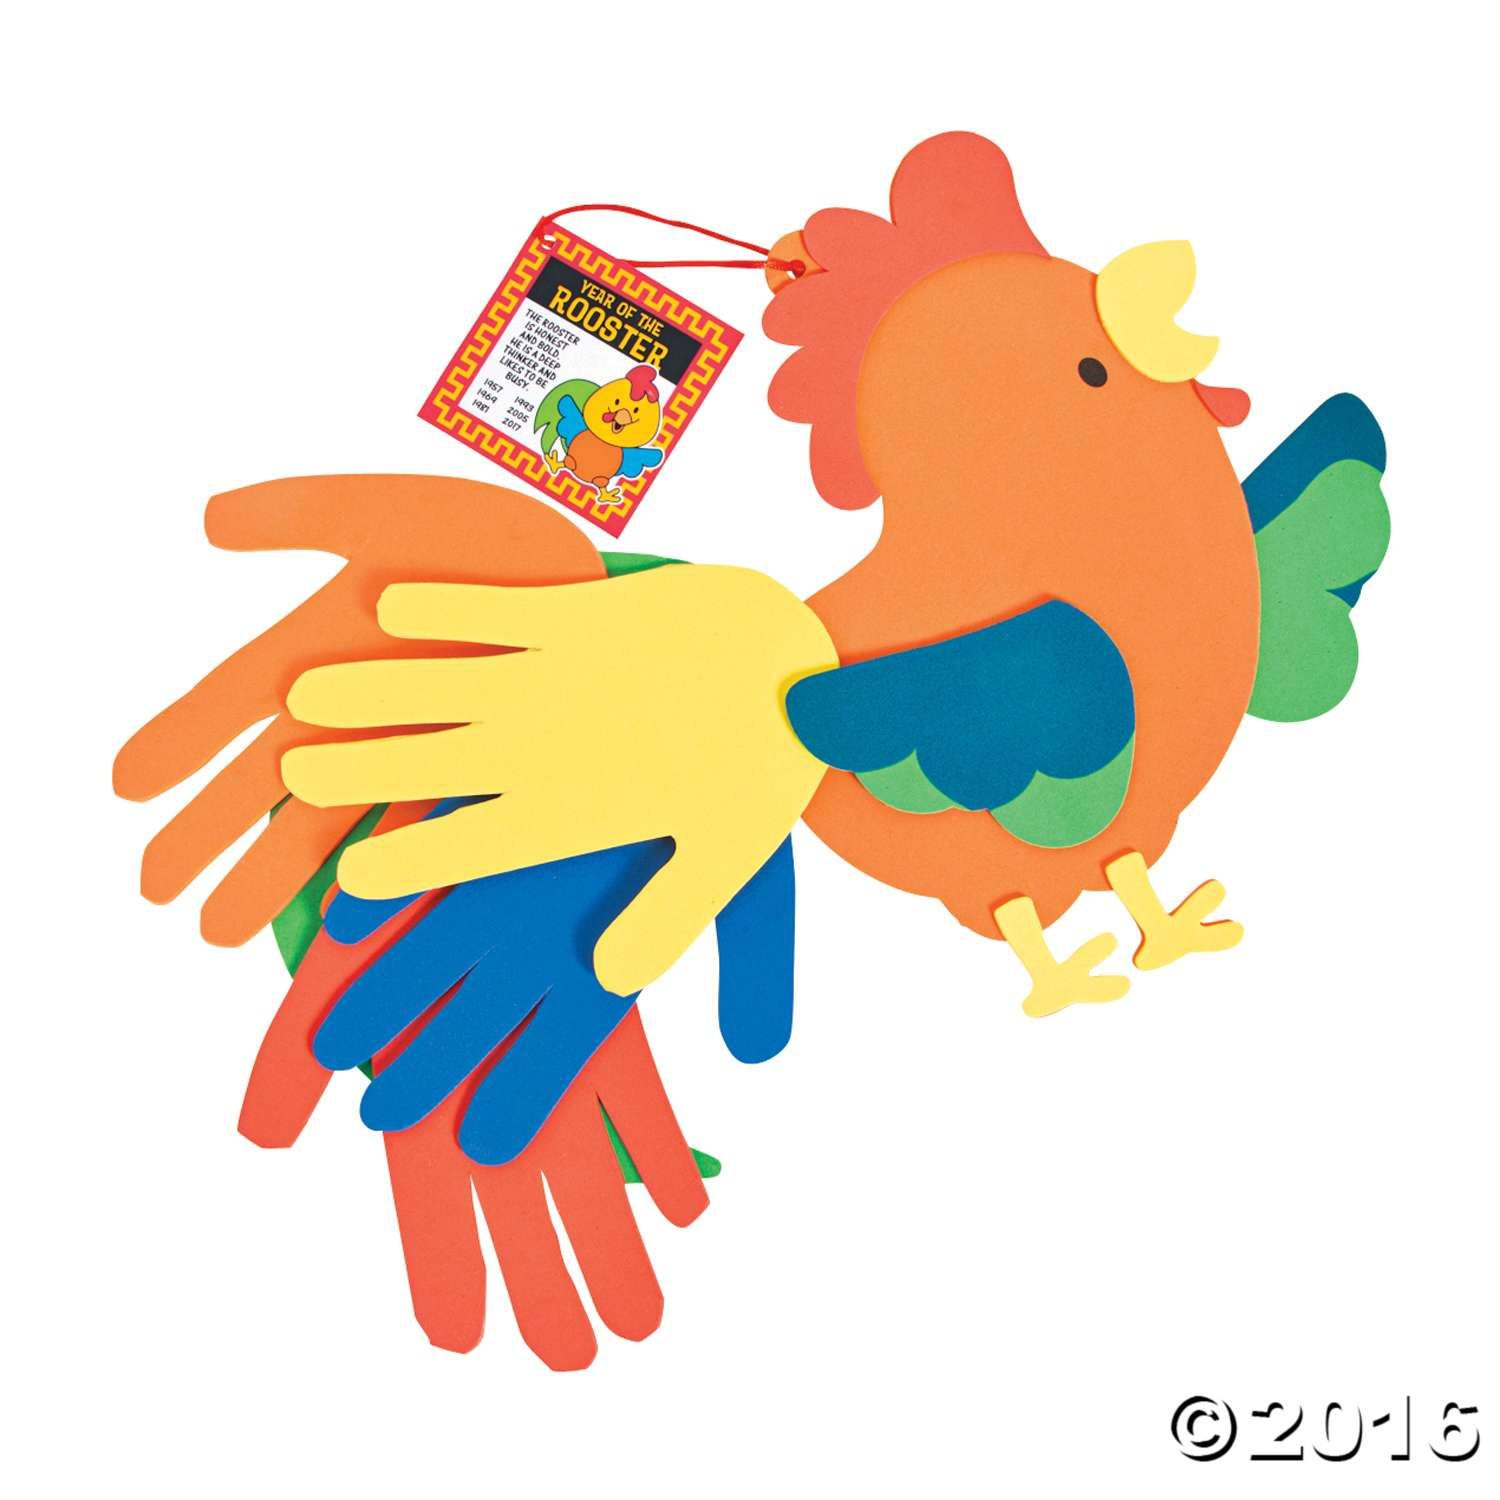 Celebrate The Year Of The Rooster With This Fun Craft For